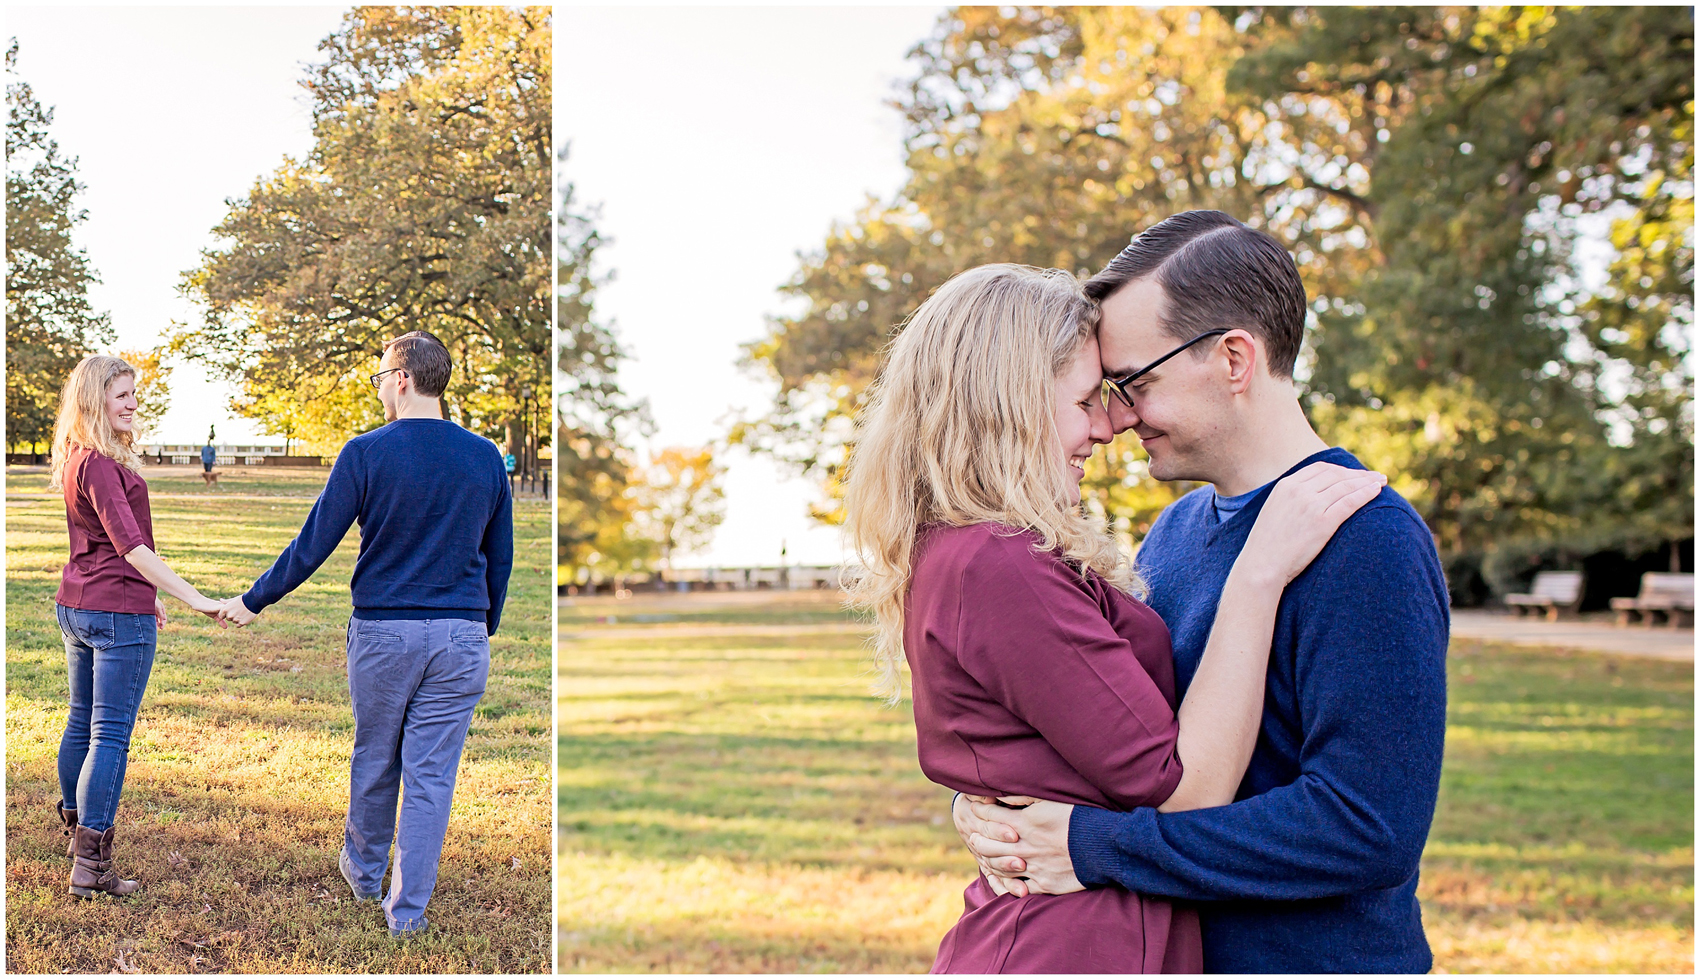 h-street-meridian-hill-washington-dc-engagement-photography-liz-stewart-photo-00008